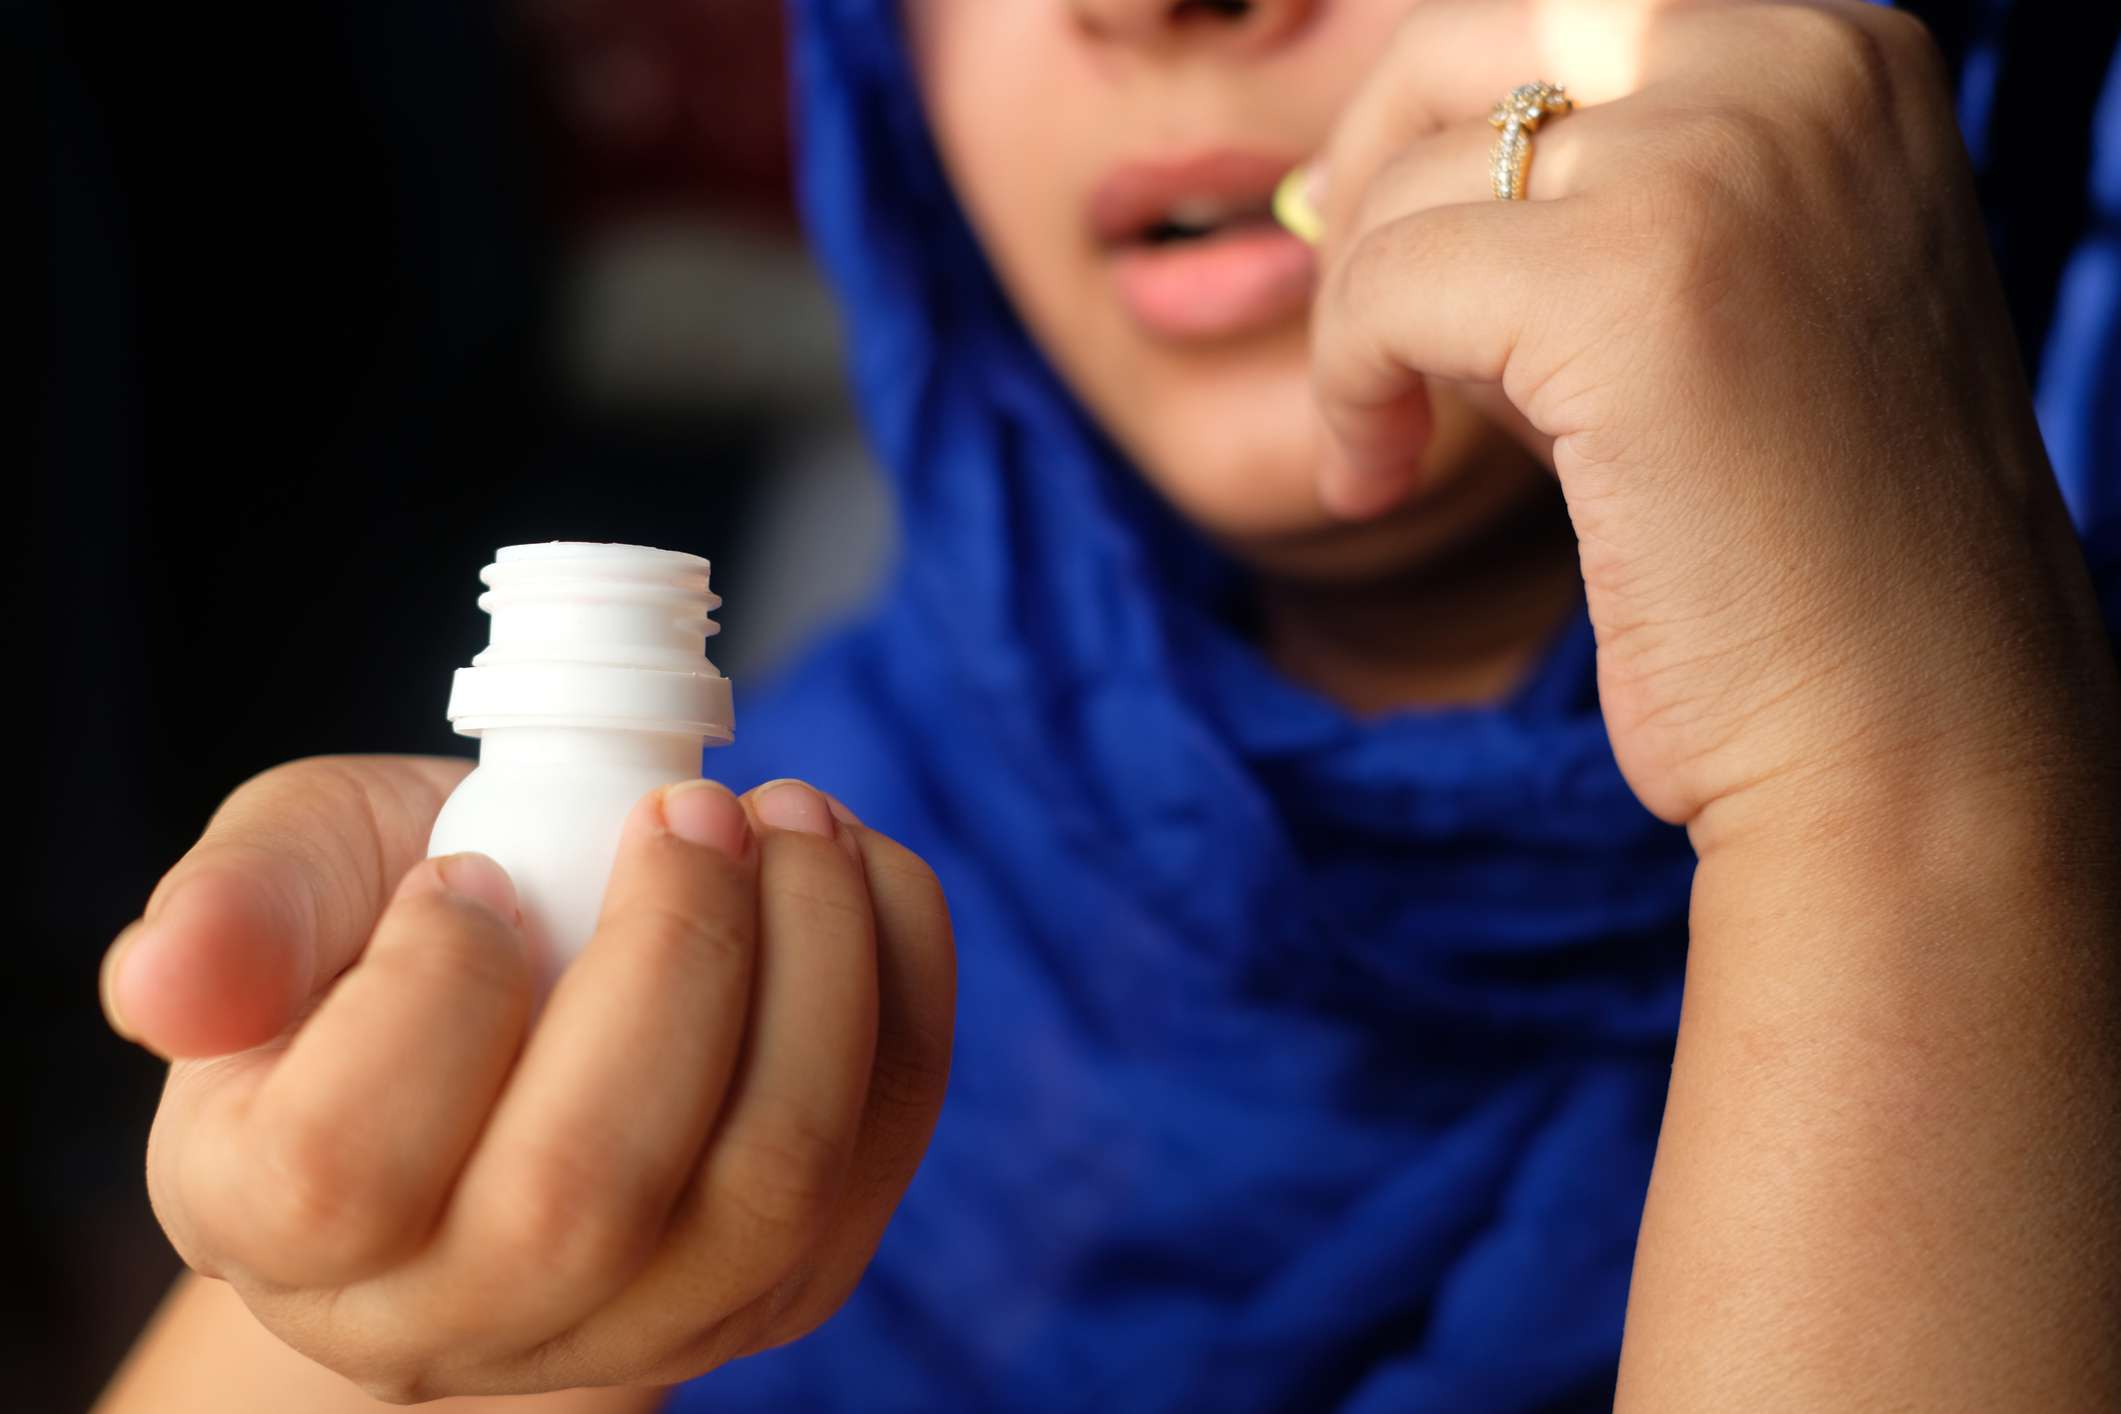 Woman wearing a head scarf holding a pill bottle and taking a pill